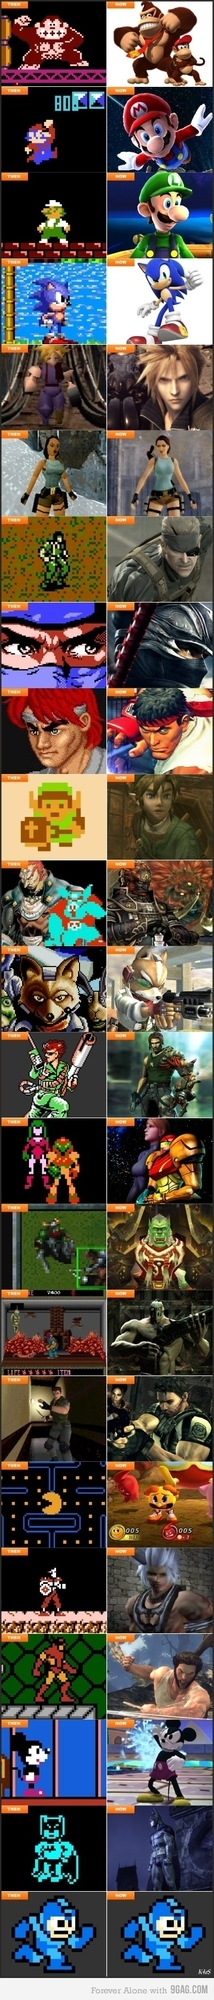 Game Characters 30 Years Later